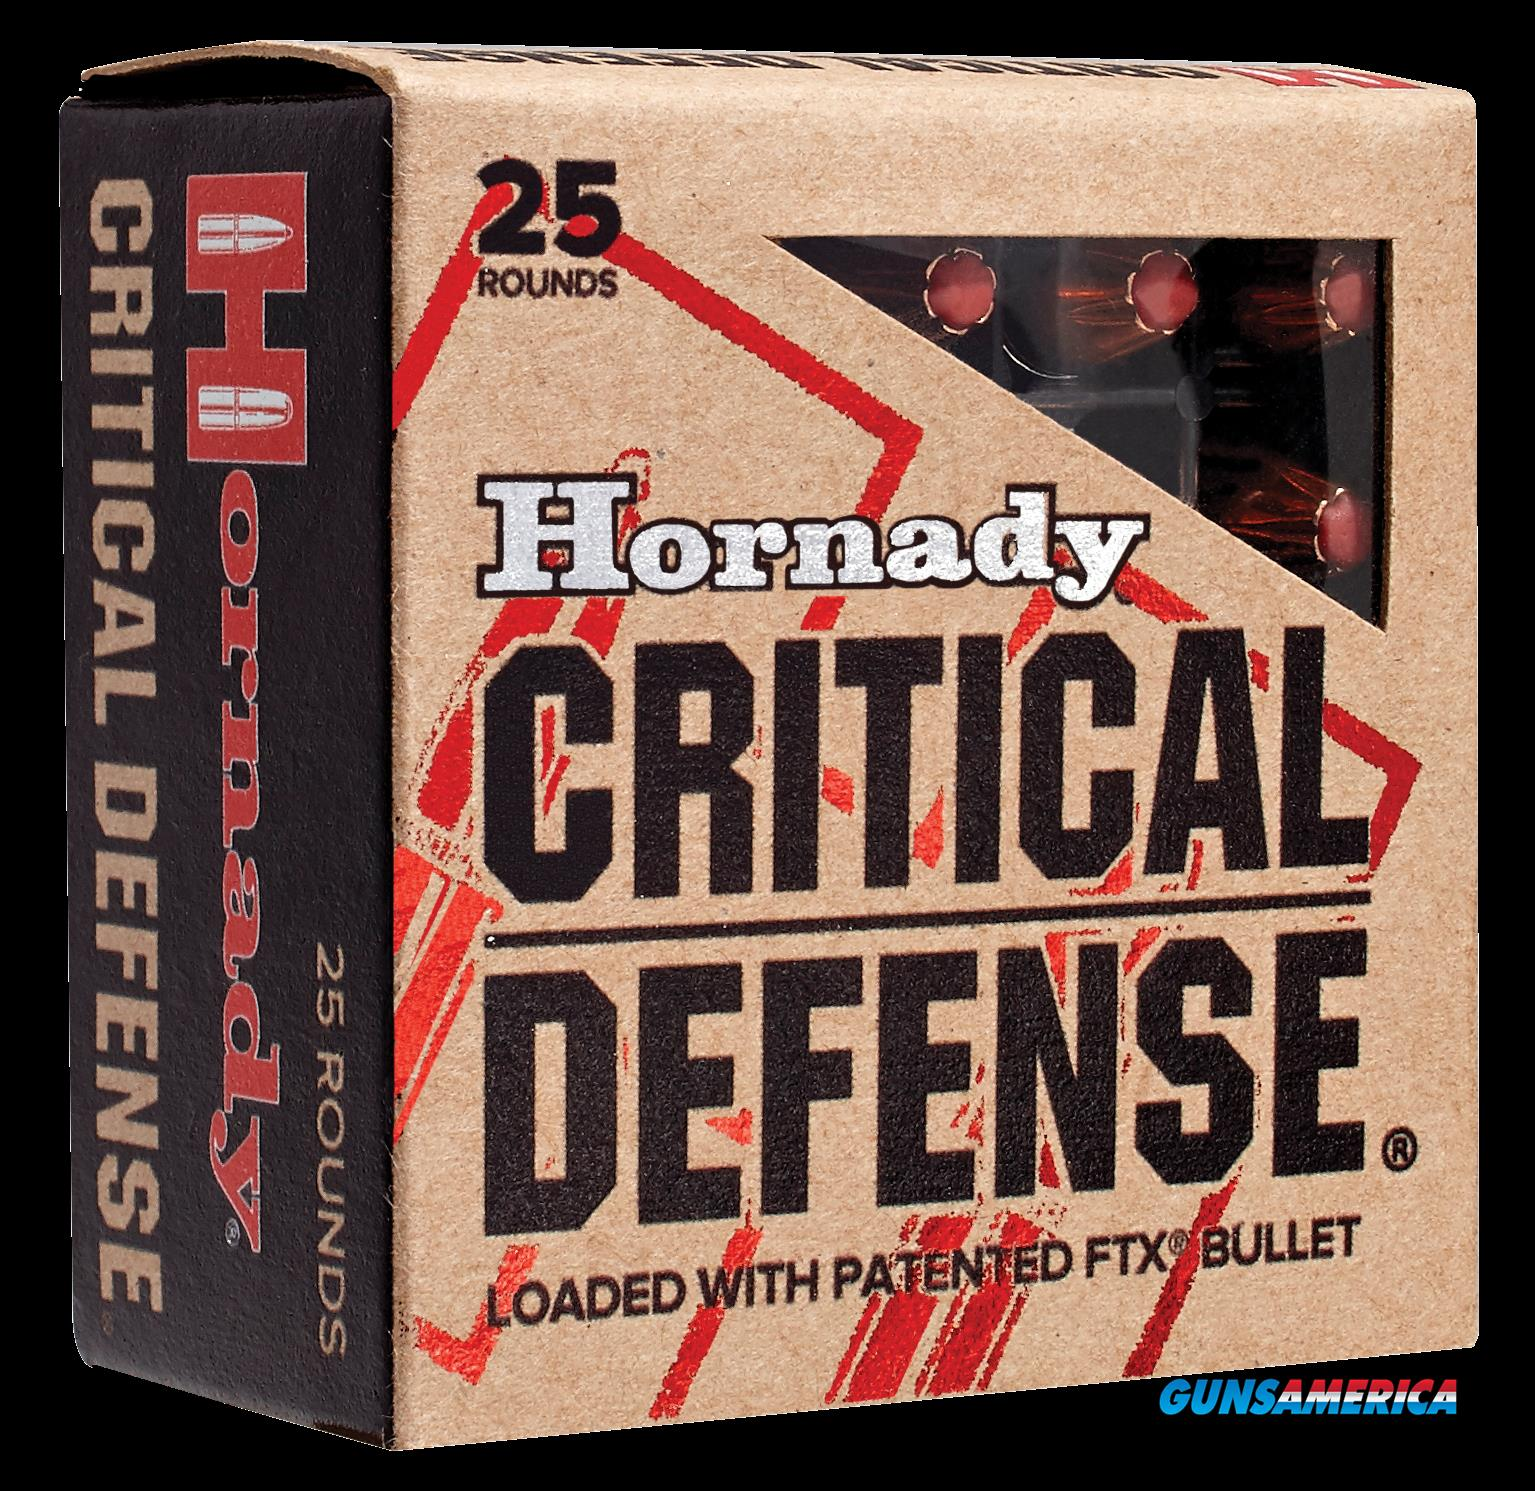 Hornady Critical Defense, Horn 90700 Critdef 44 Sp 165 Ftx 20-10  Guns > Pistols > 1911 Pistol Copies (non-Colt)